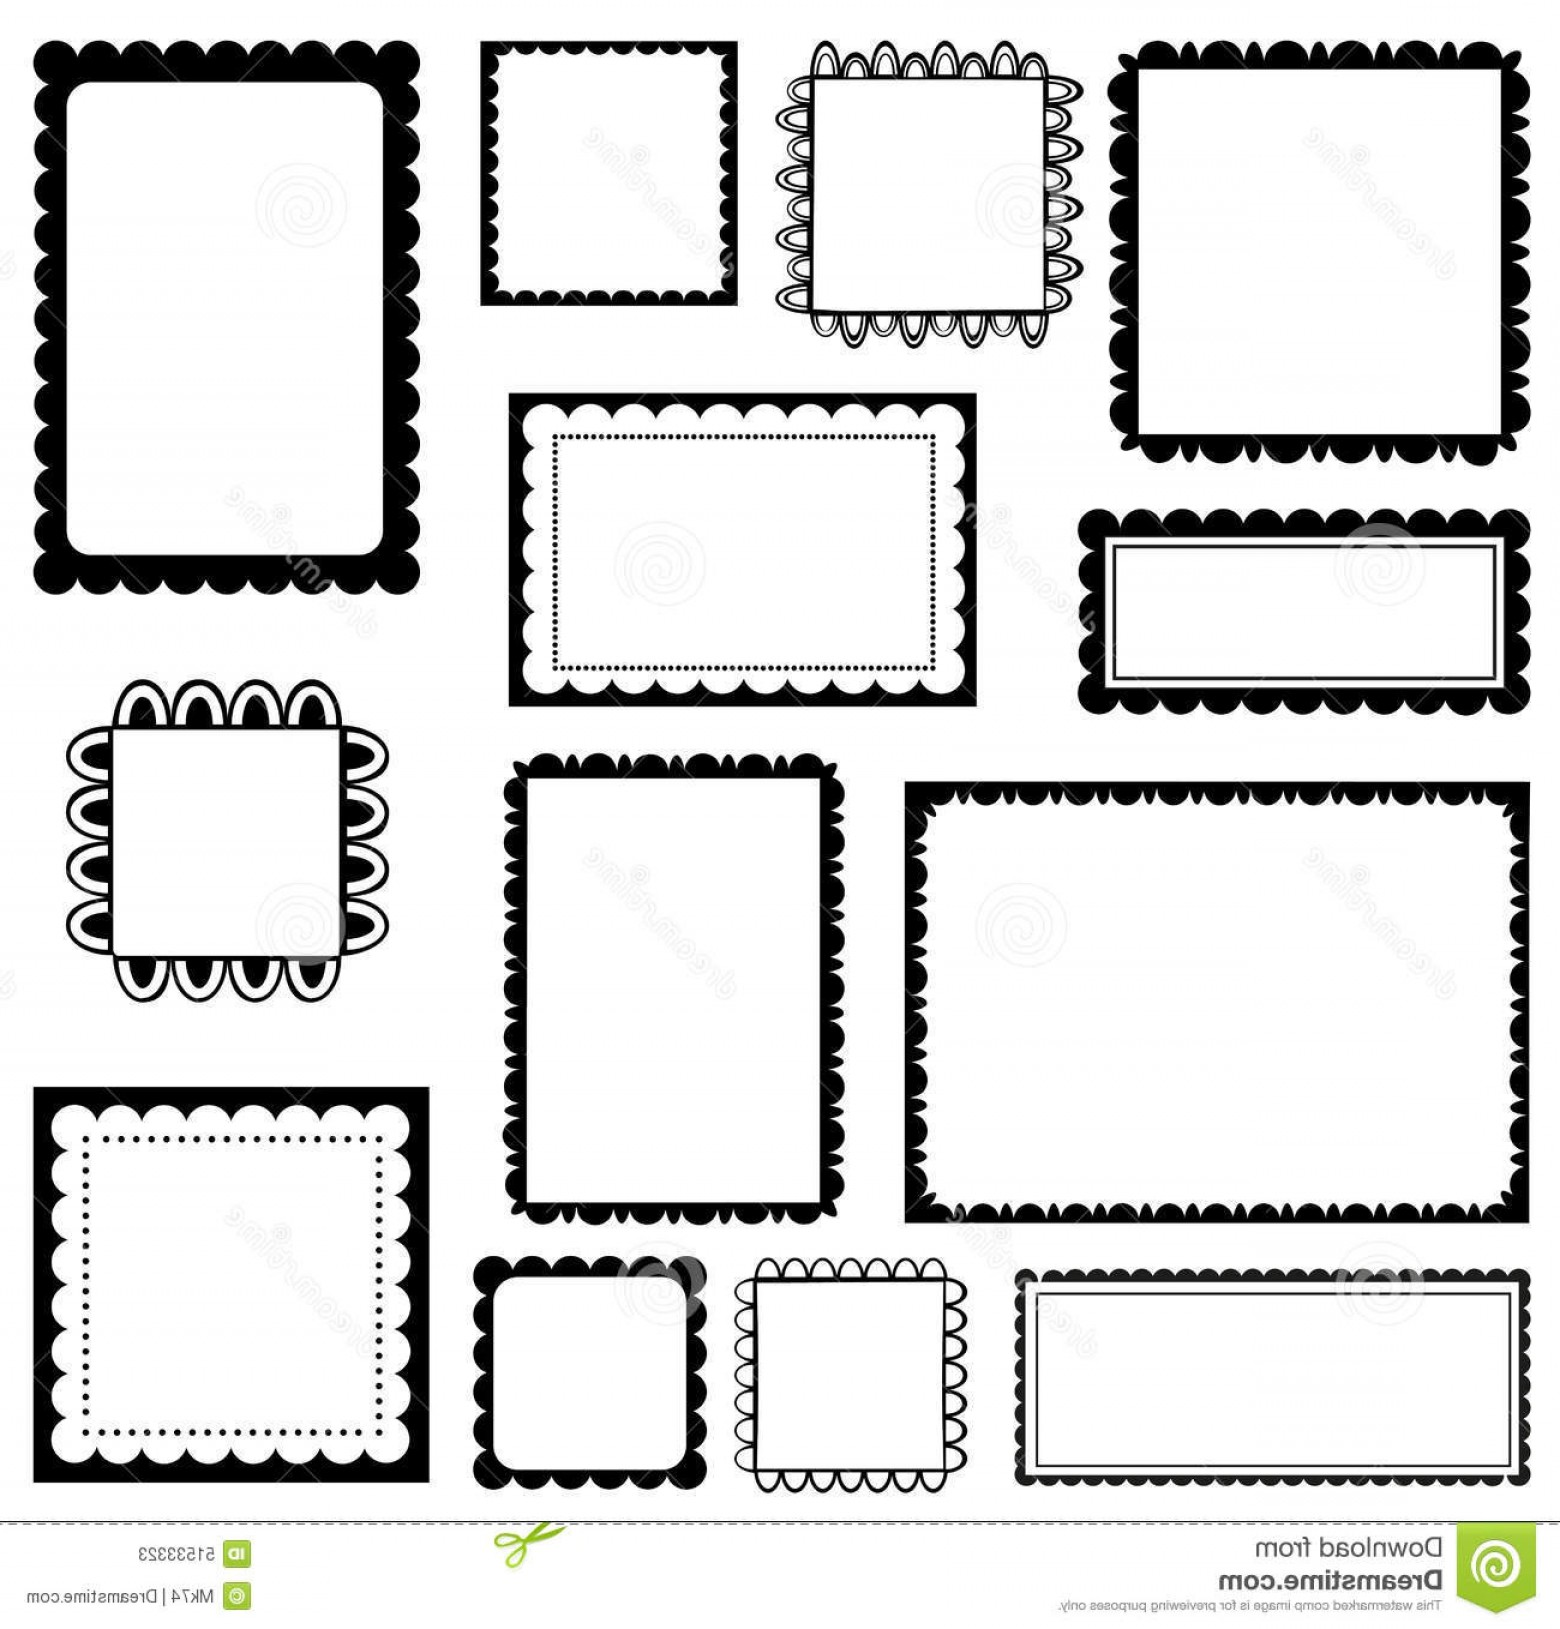 1560x1629 Stock Illustration Scalloped Frames Set Black White Image